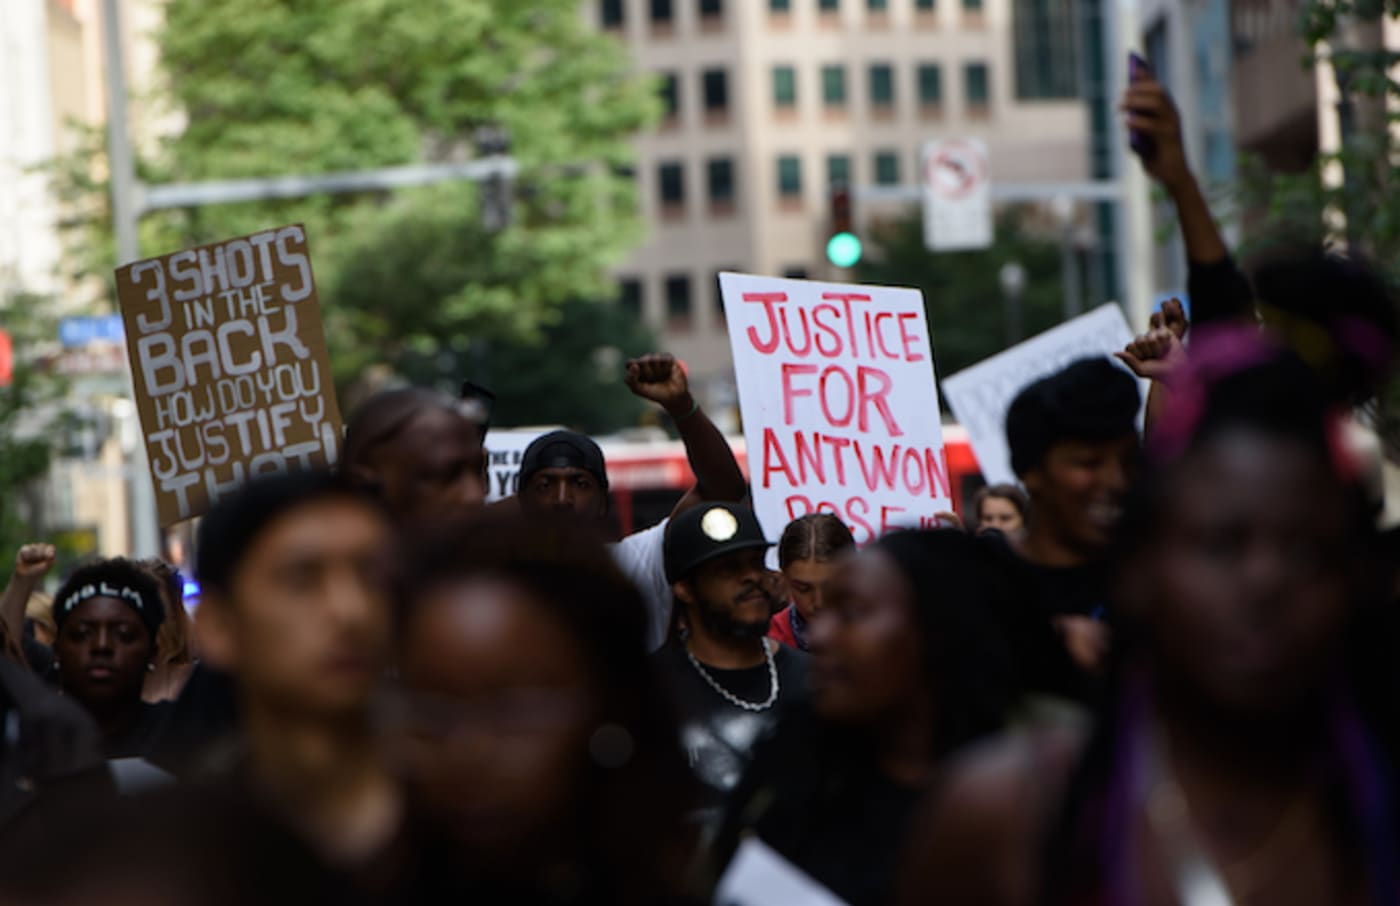 Protestors at a rally asking for justice for Antwon Rose.